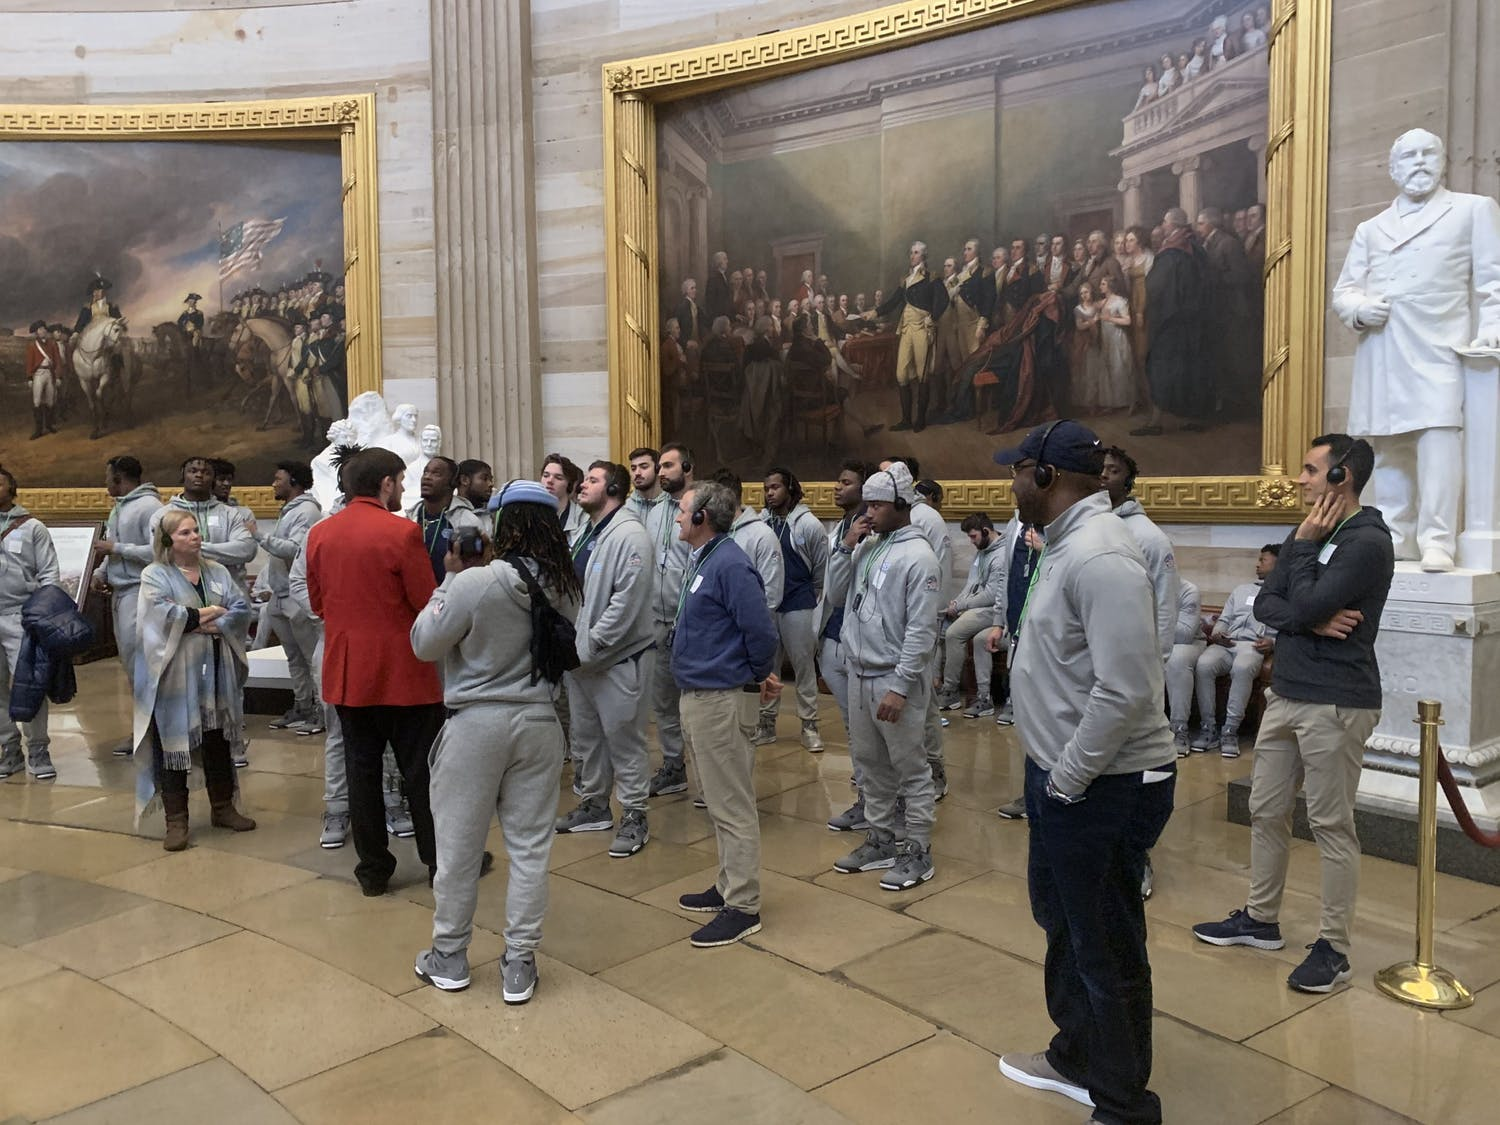 Members of the UNC football team in the Rotunda of the United States Capitol